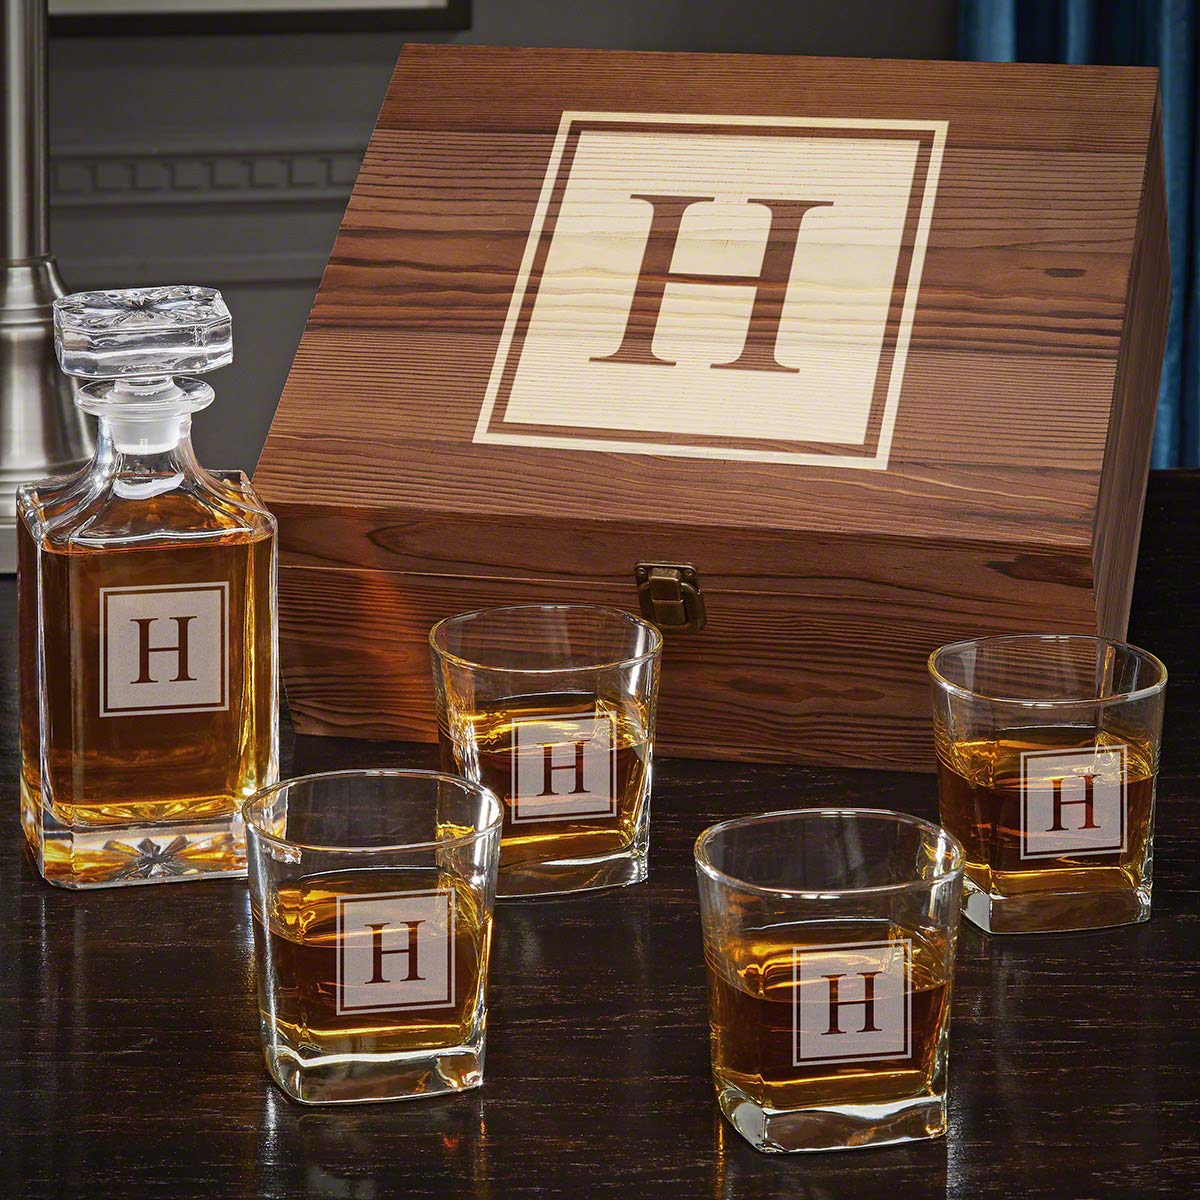 Block Monogram Personalized Whiskey Decanter Set (Customizable Product)